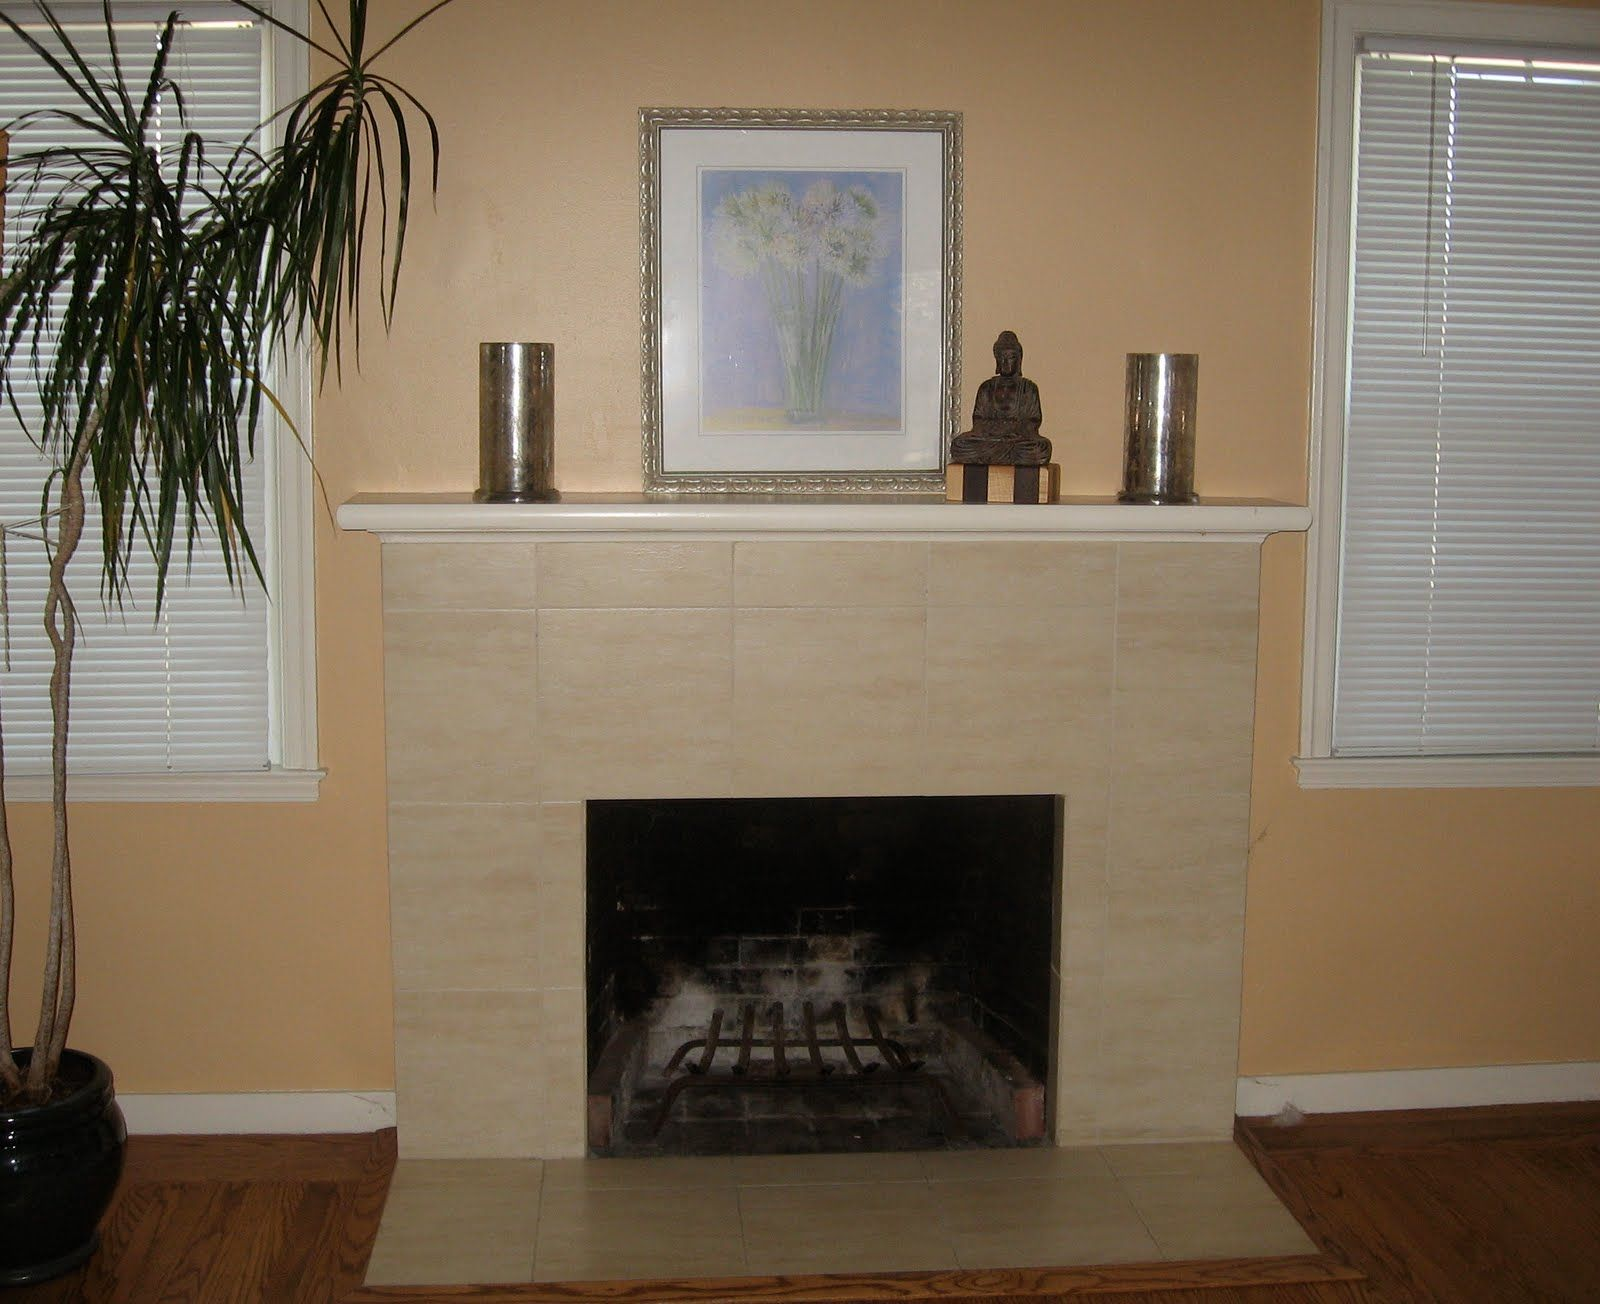 Multipurpose fireplace surrounds fireplace for fireplace mantels amazing gas fireplace mantel ideas to warm your winter time modern minimalist gas fireplace mantels with ceramic hearth extension ideas simple design dailygadgetfo Choice Image